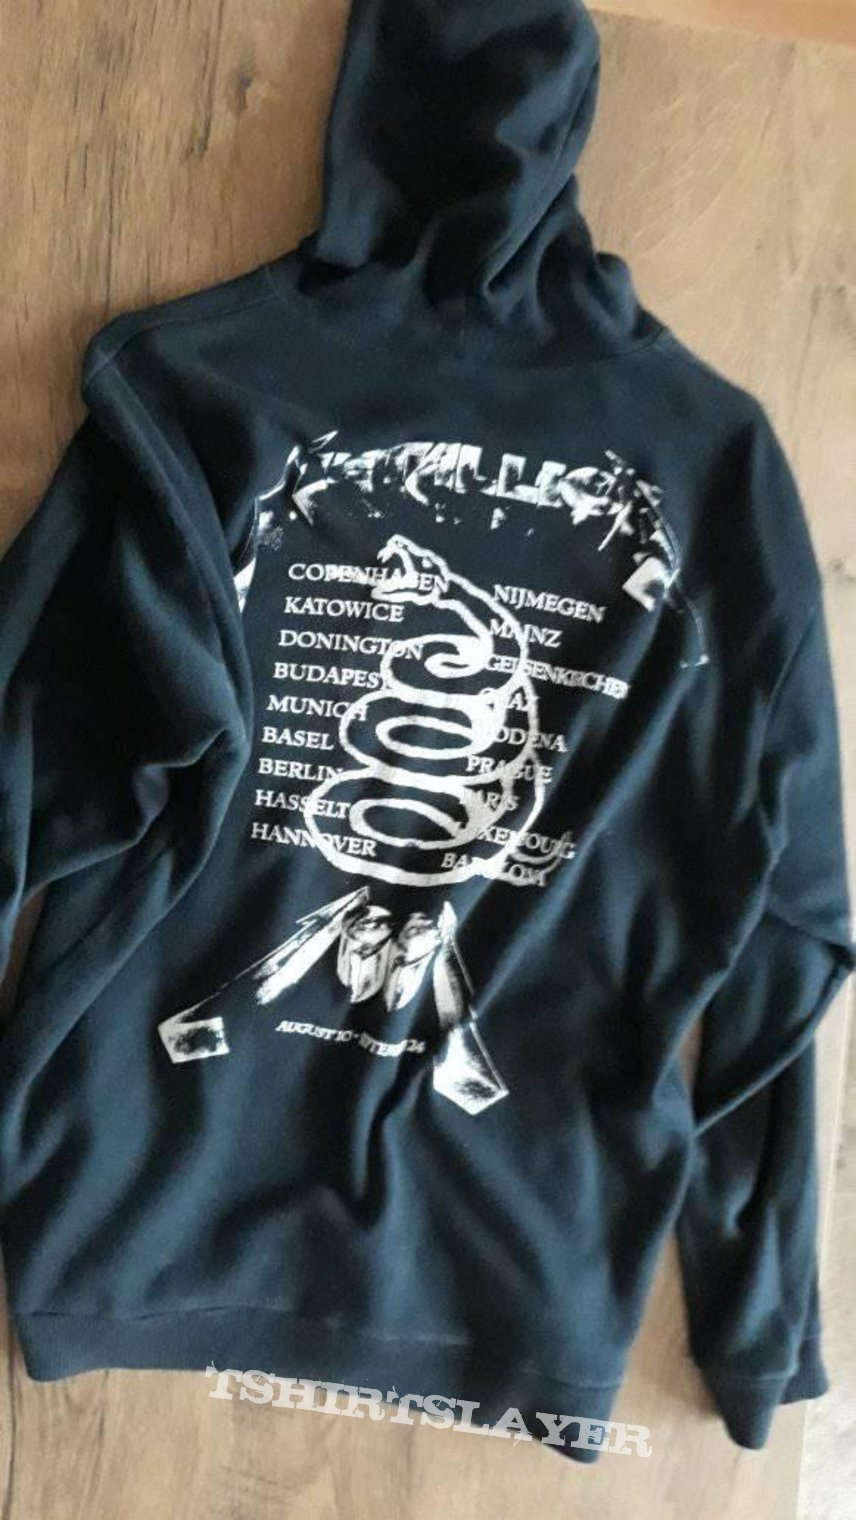 Metallica Tour 1991 Hooded Top size S/M